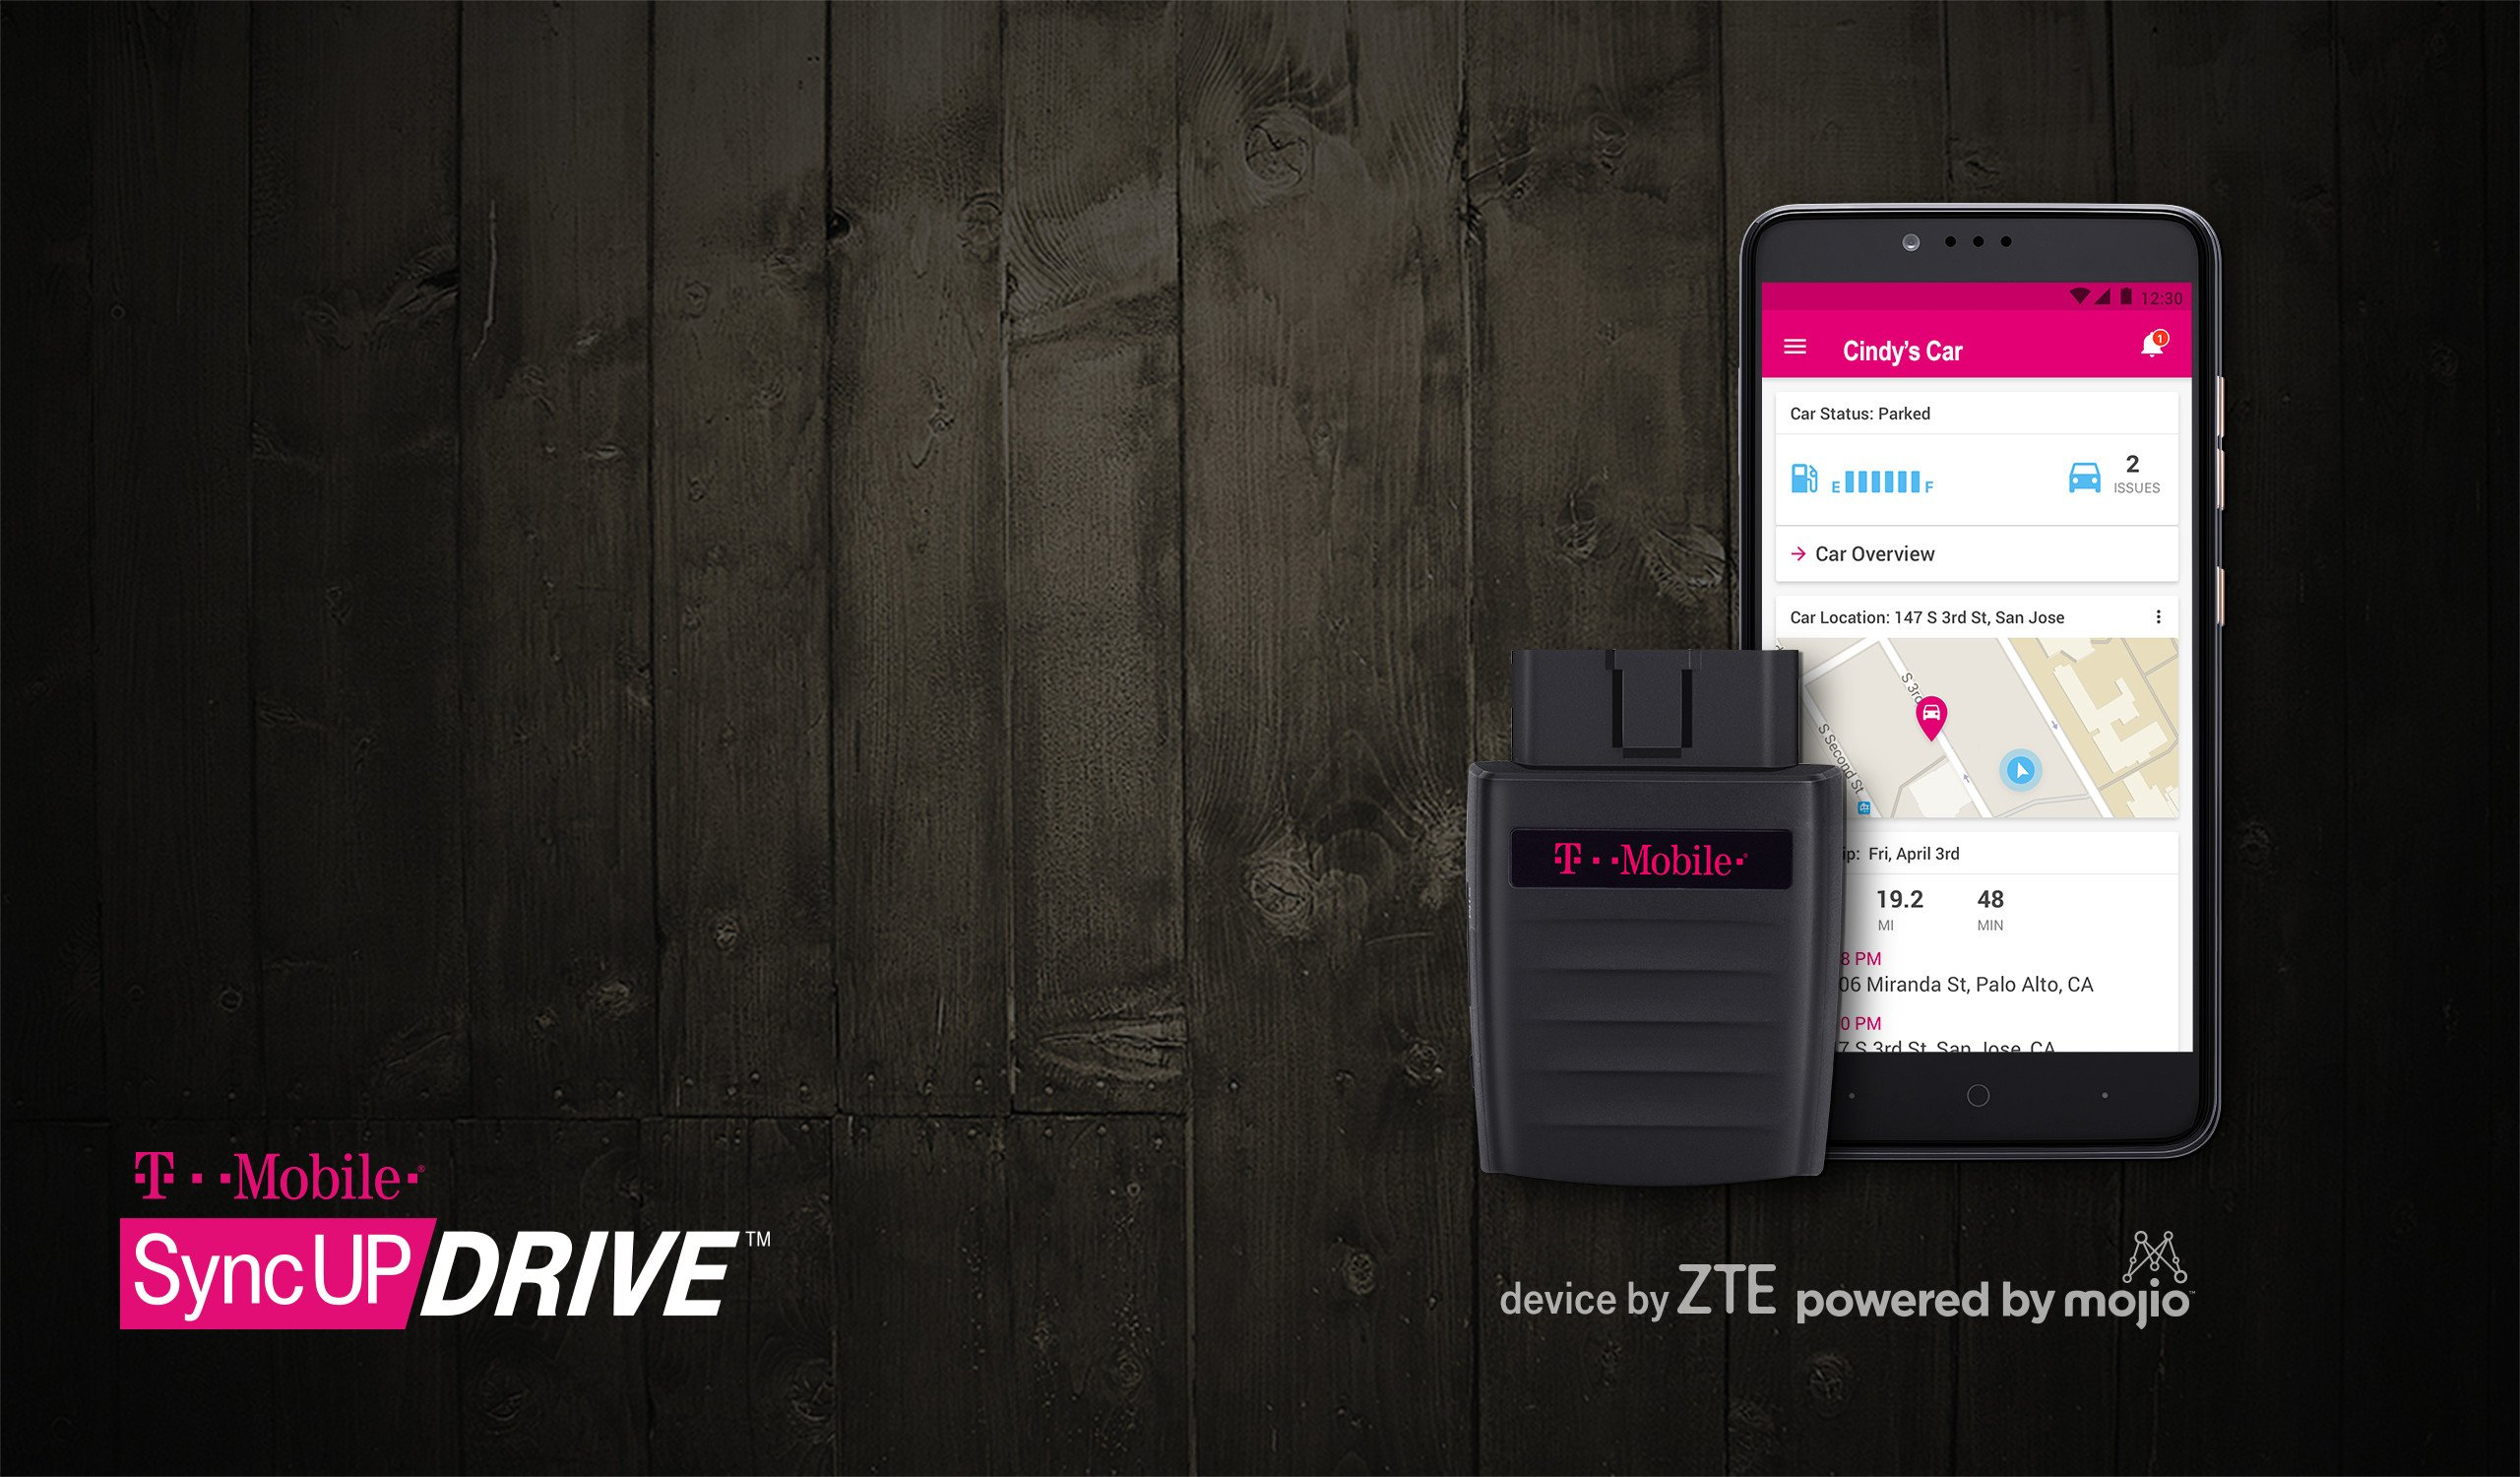 Mobile SyncUP DRIVE to connect your vehicle with LTE